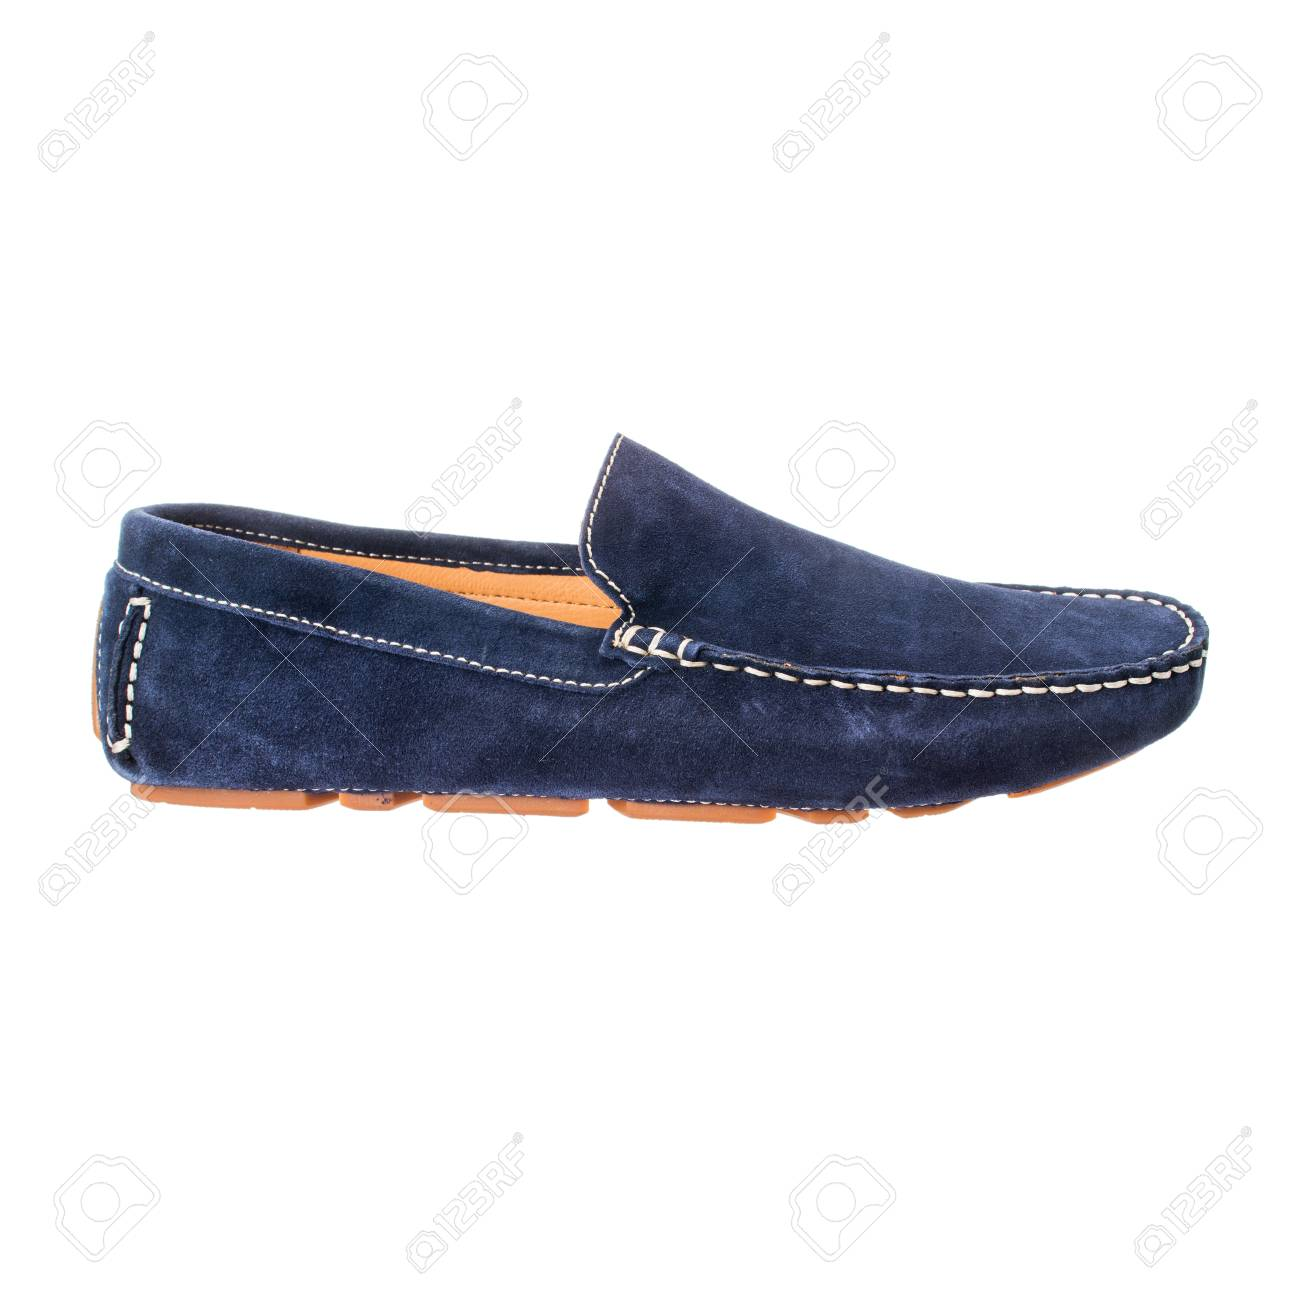 76831eac1c55f blue mens moccasins of suede unpolished leather isolated on white..